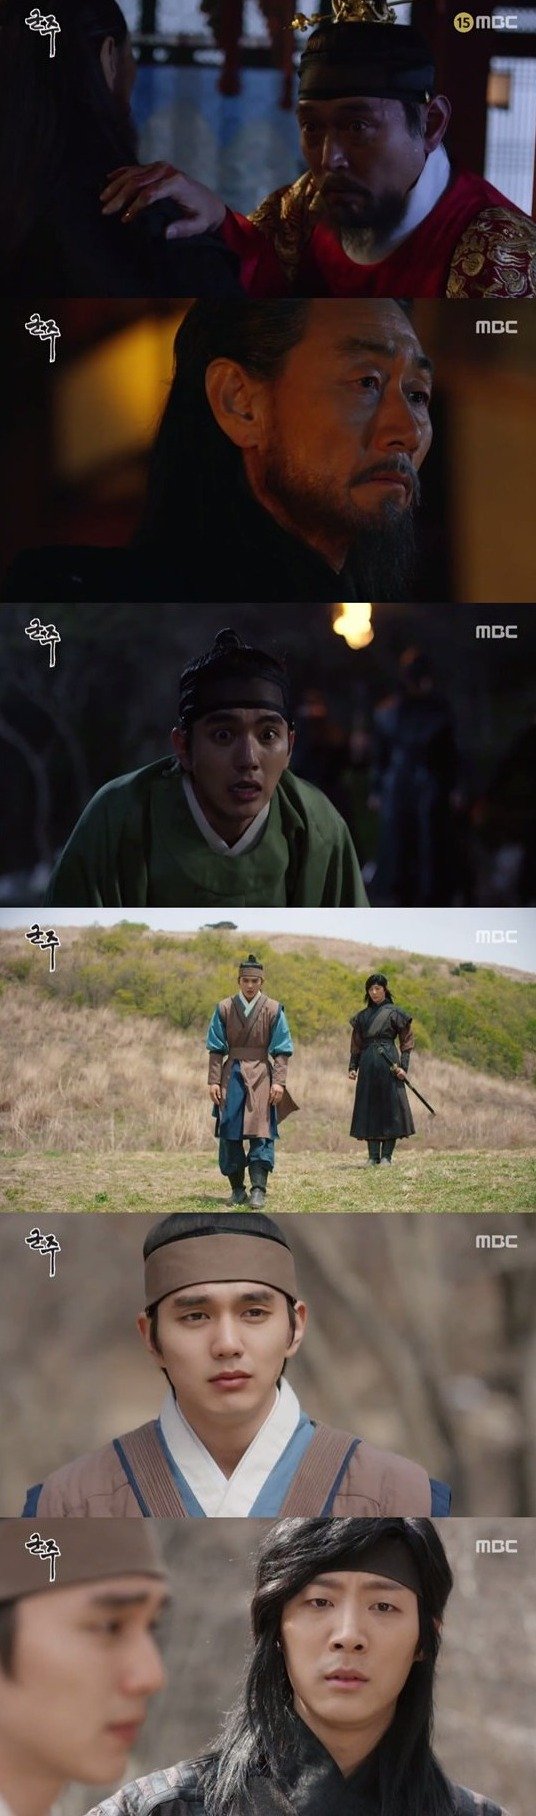 [Spoiler] Added episodes 9 and 10 captures for the Korean drama 'Ruler: Master of the Mask'